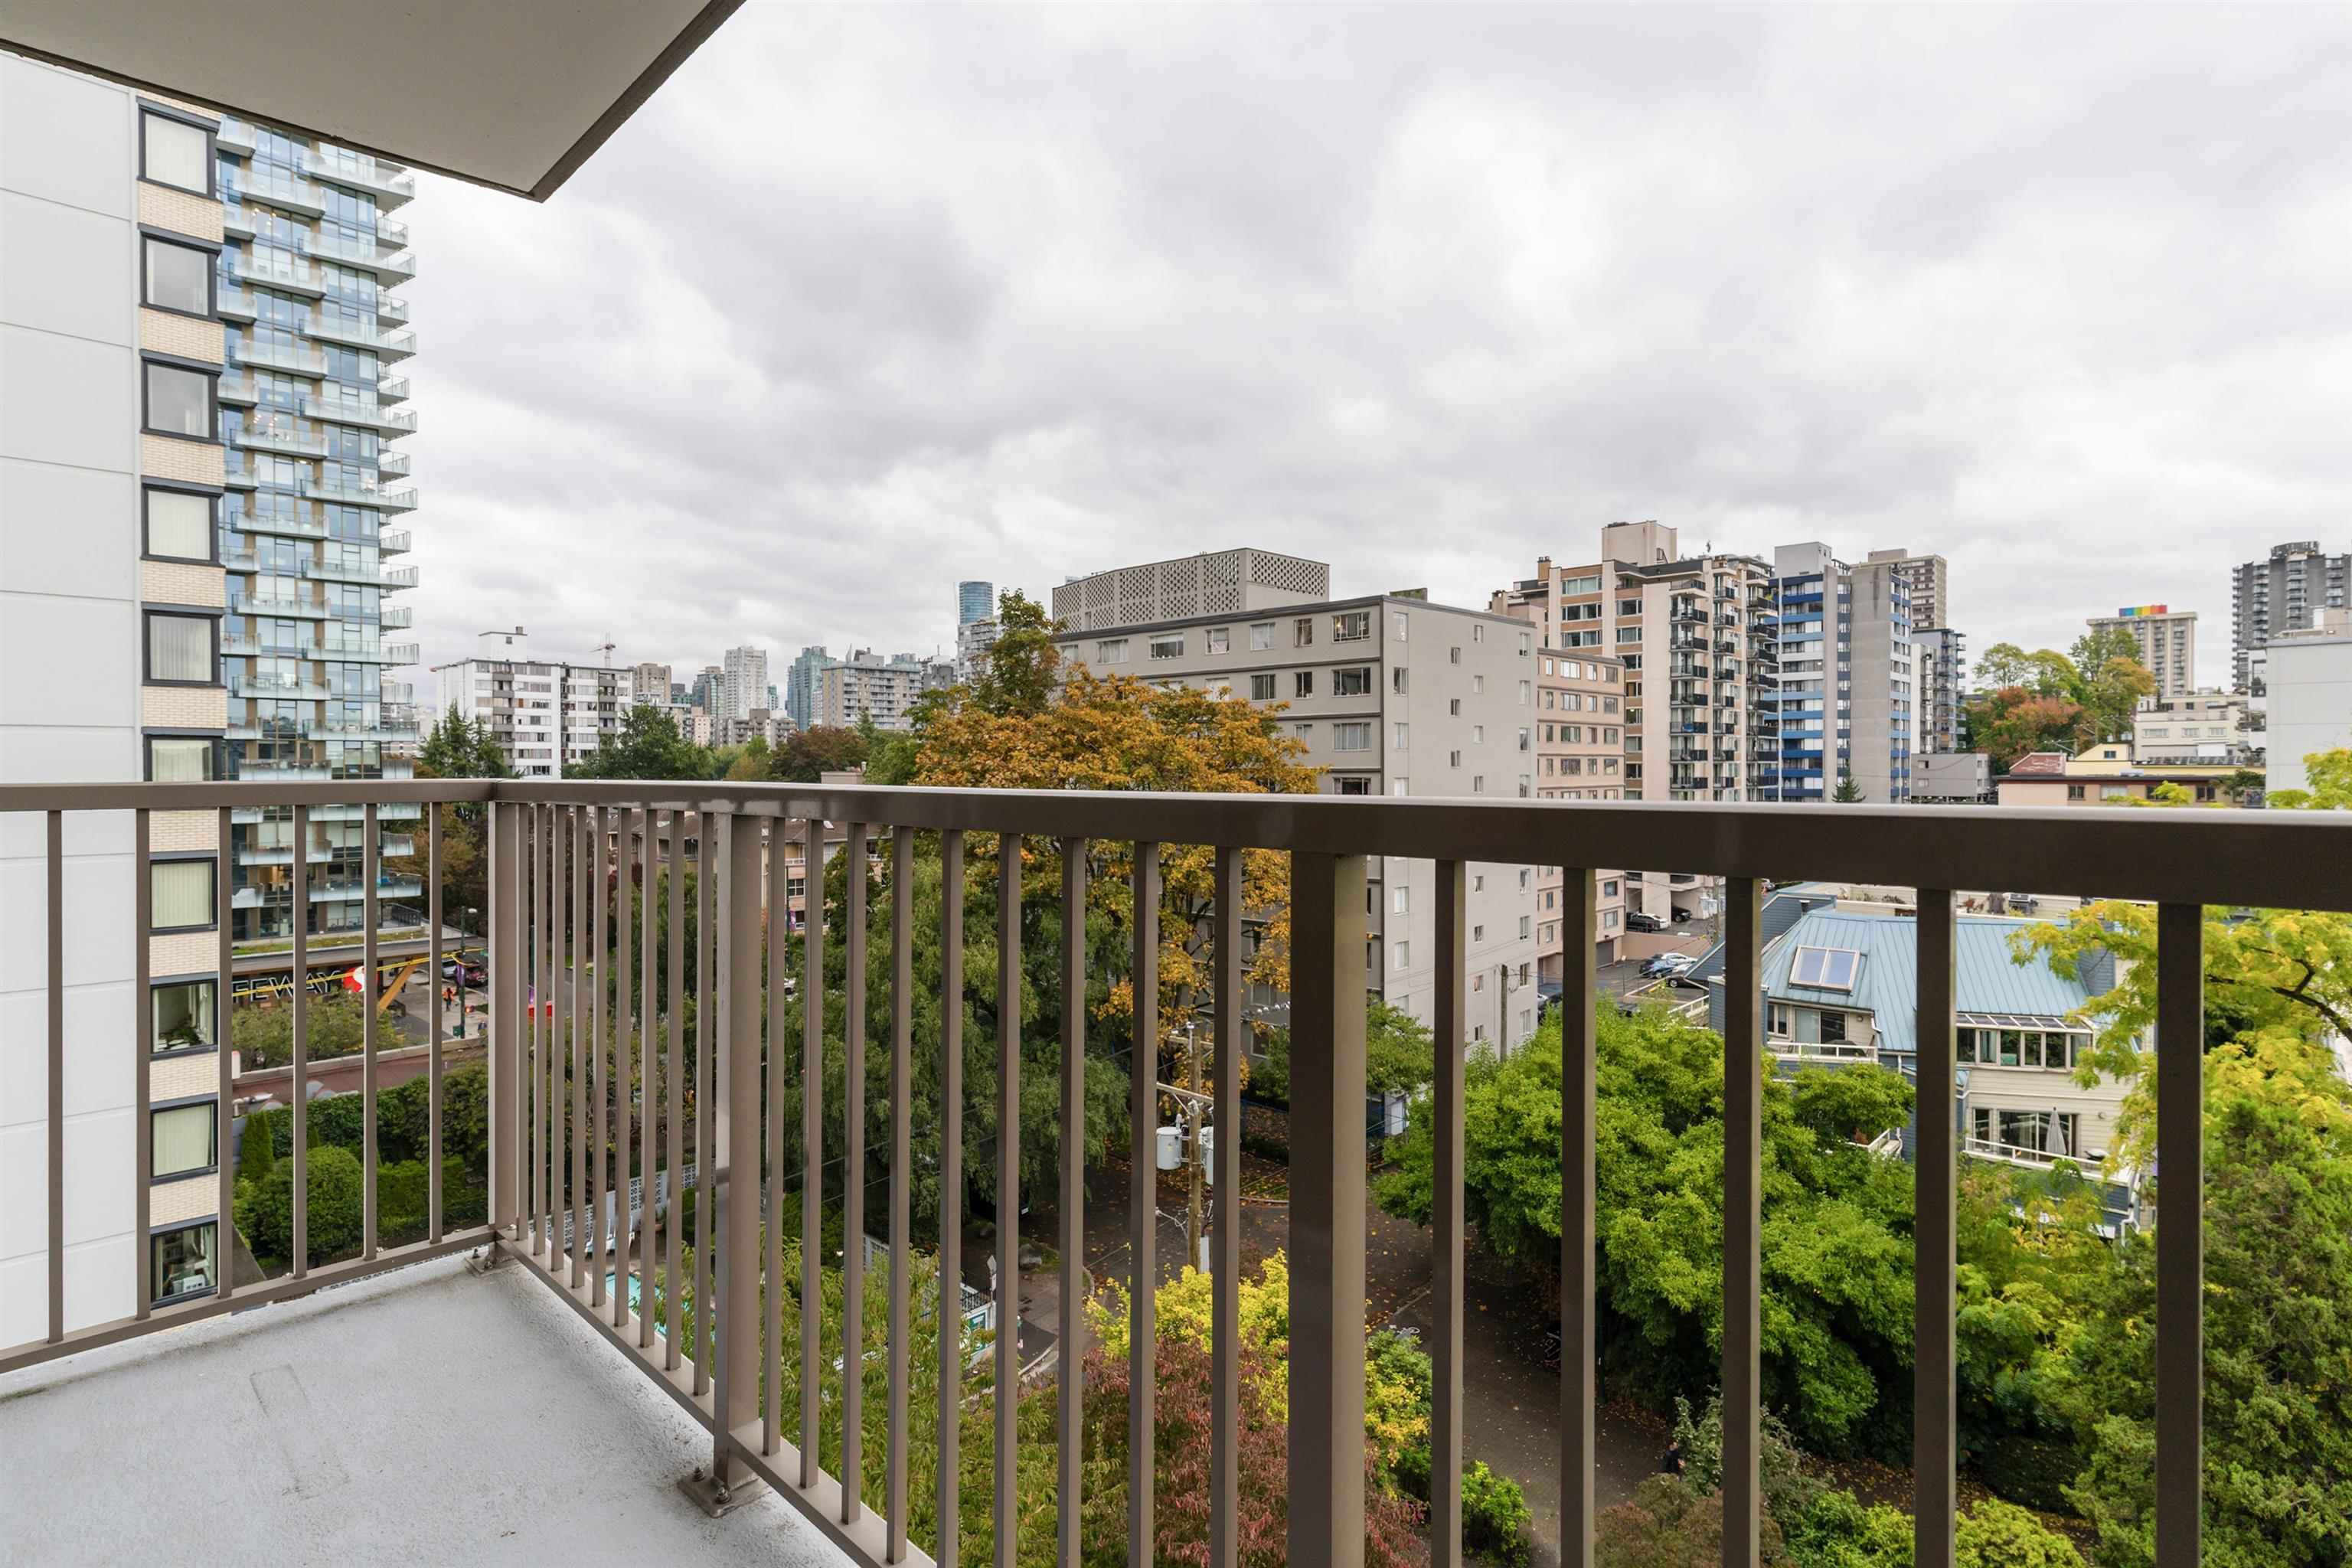 806 1251 CARDERO STREET - West End VW Apartment/Condo for sale, 1 Bedroom (R2625738) - #16